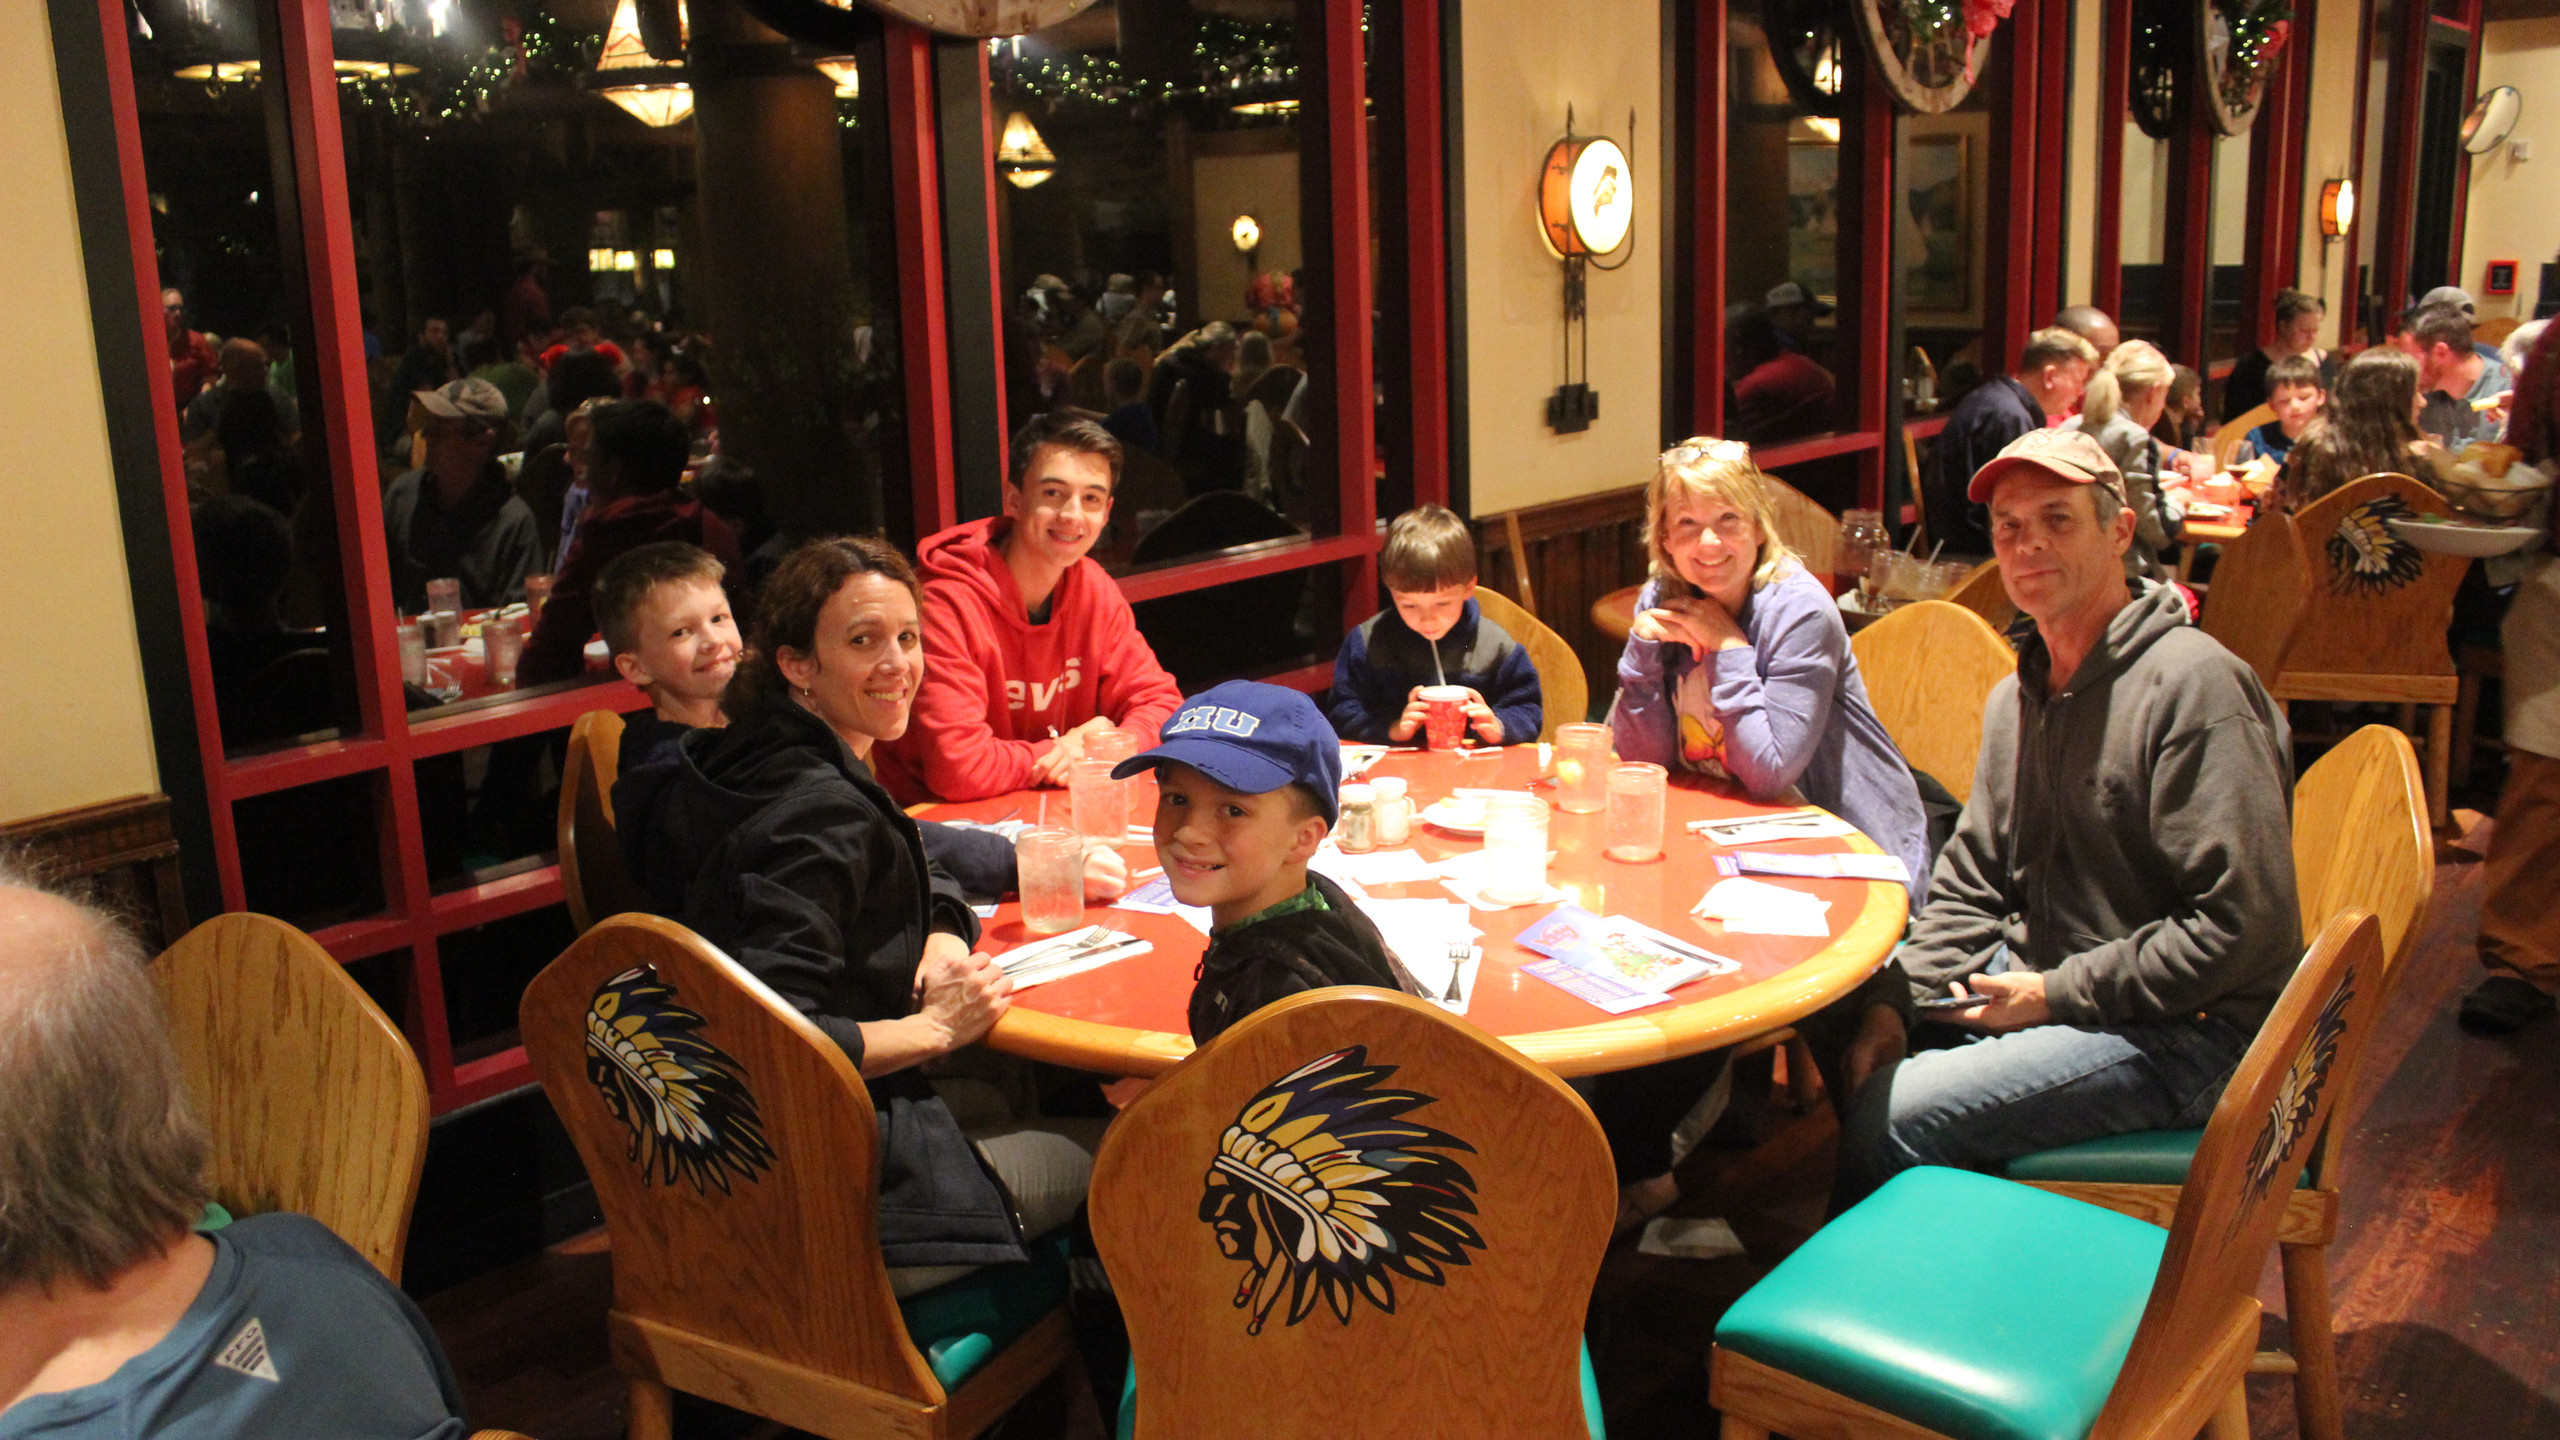 Eating at Whispering Canyon Cafe at Disney's Wilderness Lodge